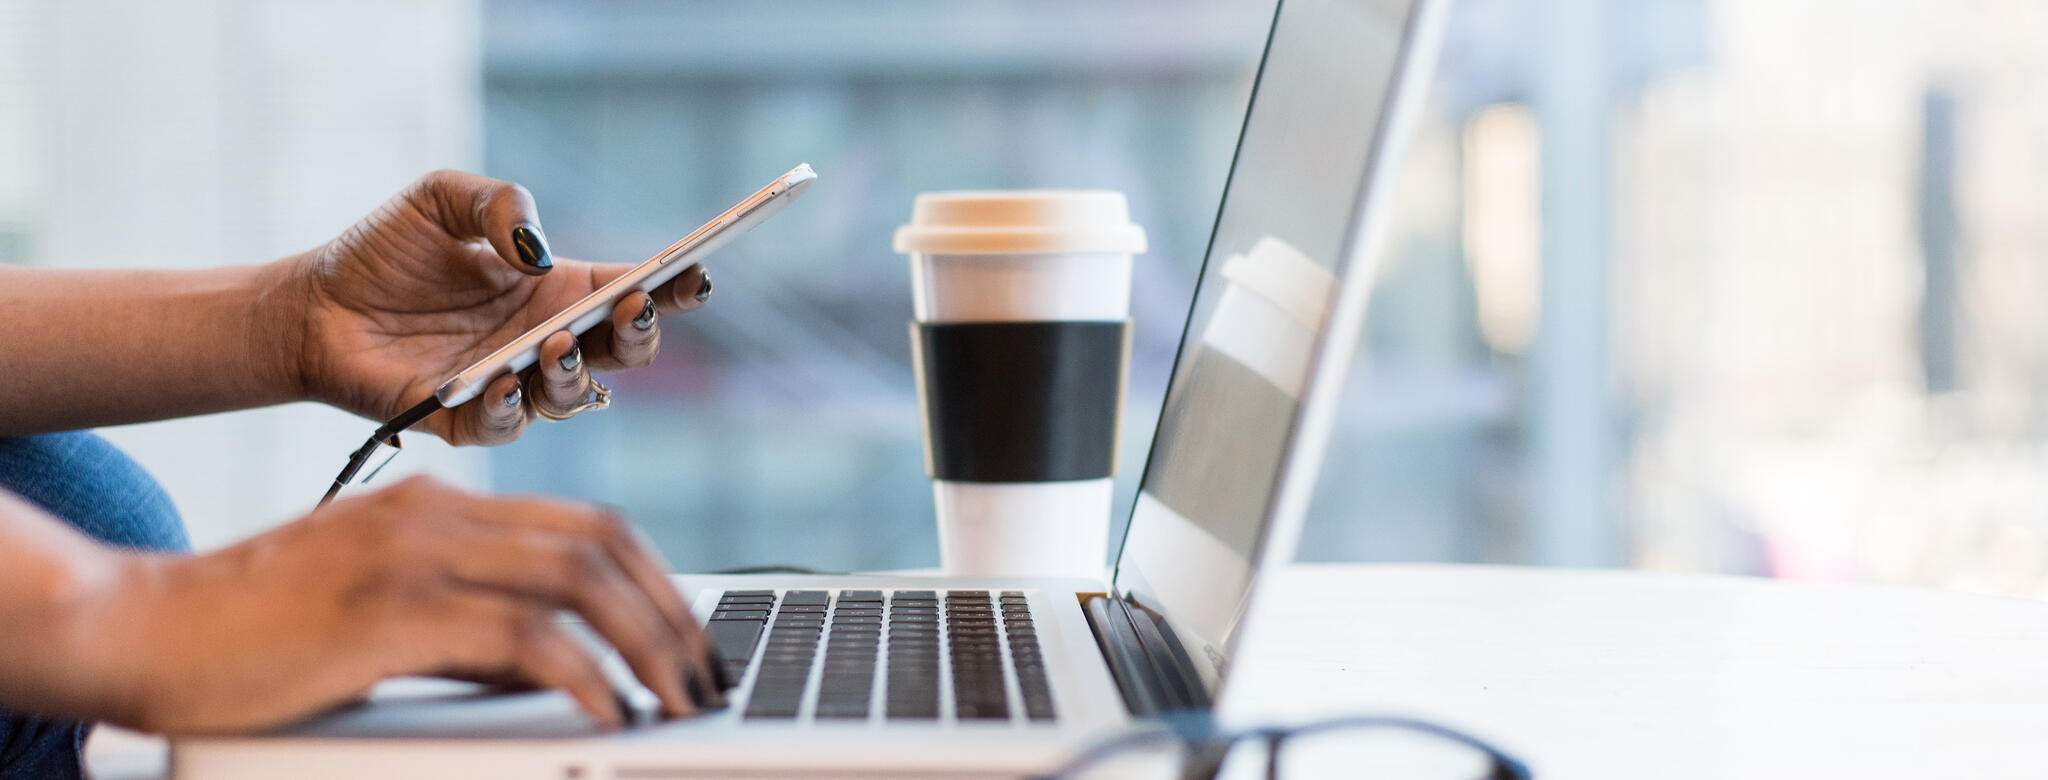 woman on laptop and smartphone with coffee cup and glasses